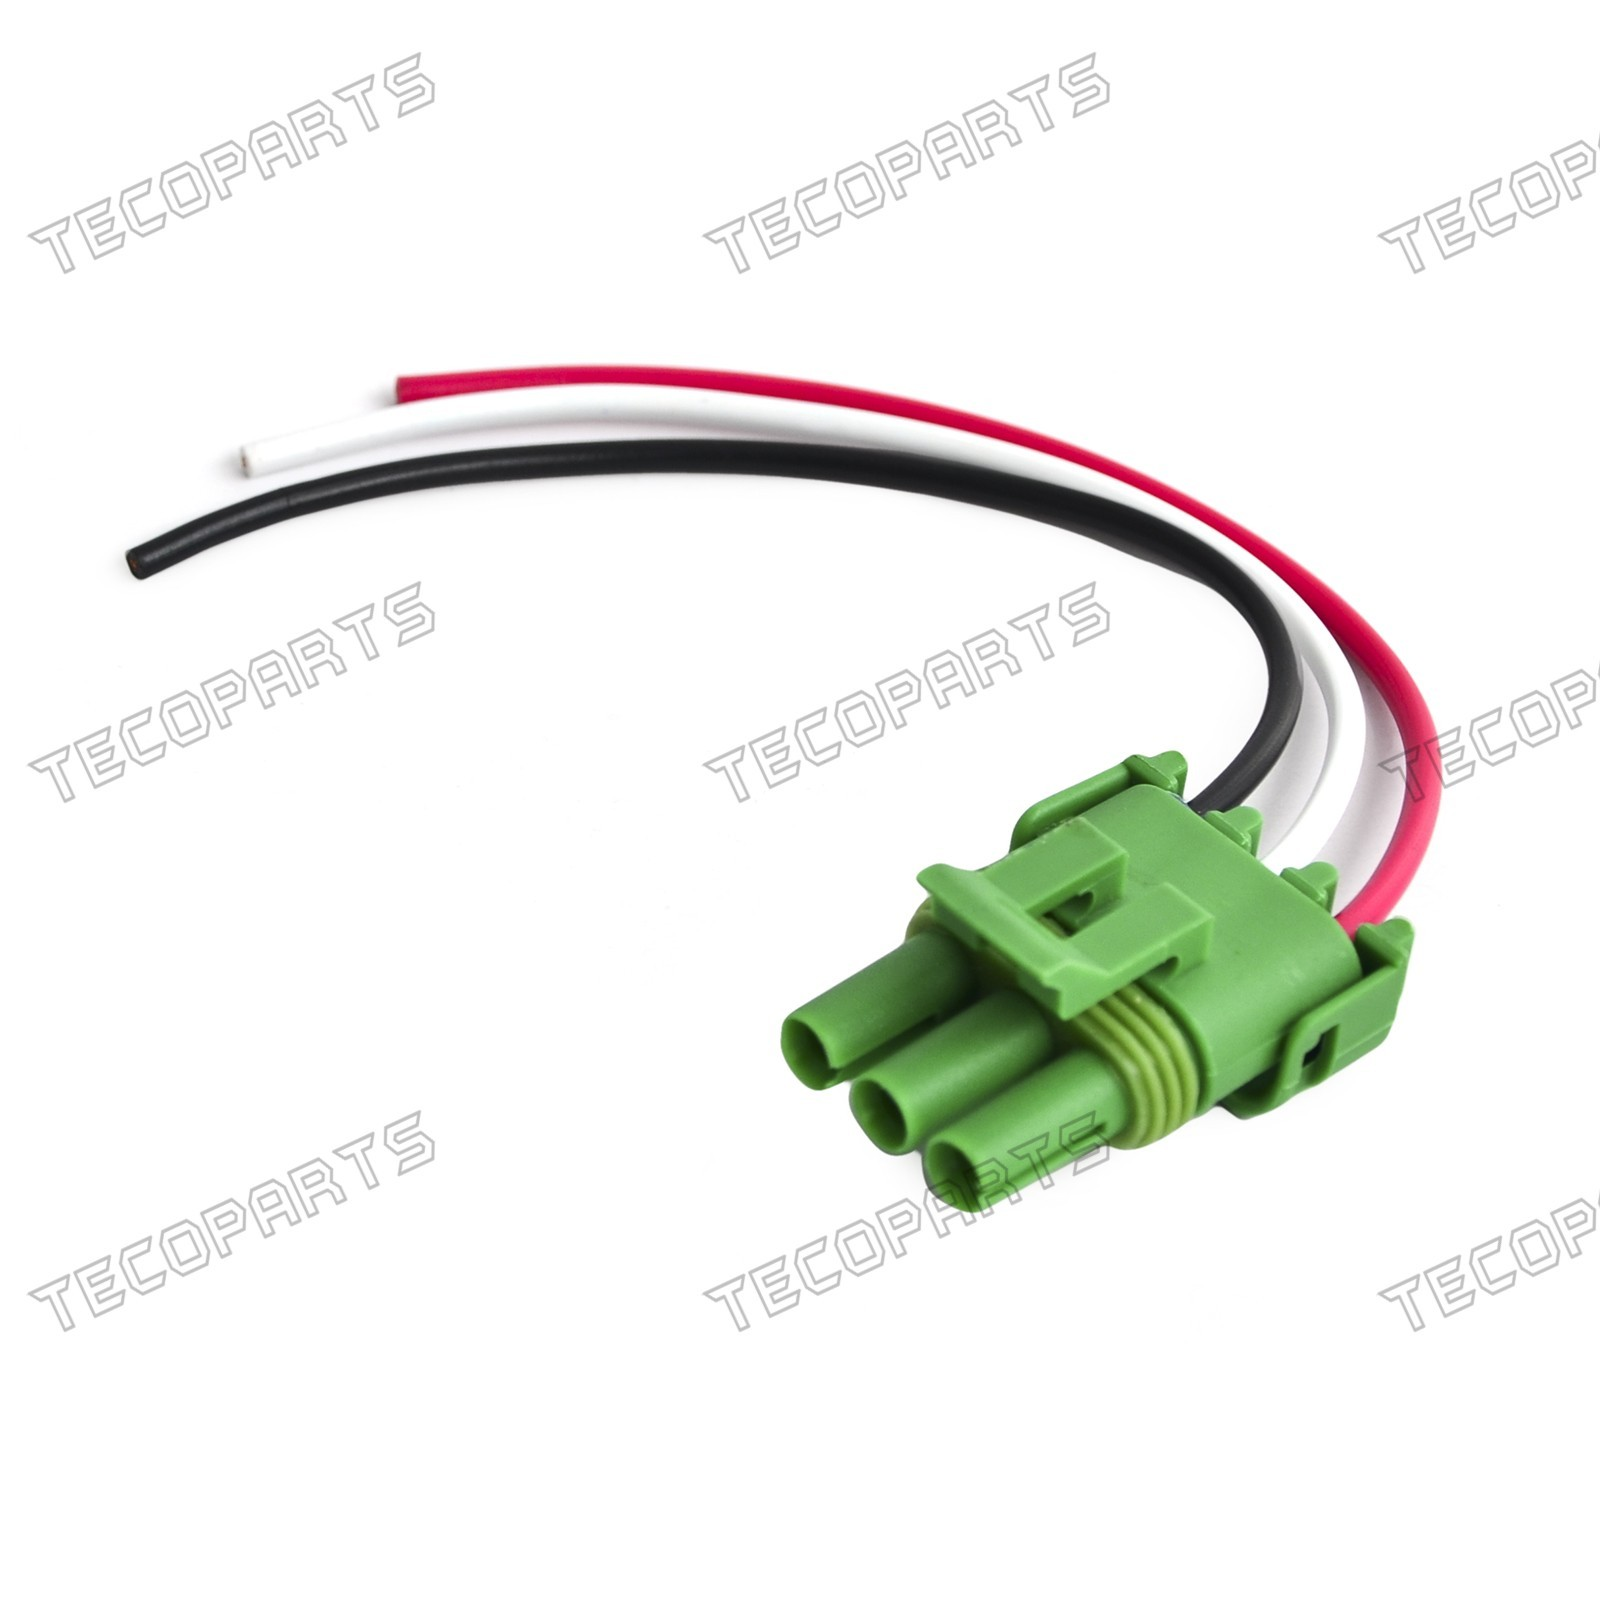 hight resolution of details about tpi tbi chevy gm map wire pigtail connector manifold absolute pressure sensor